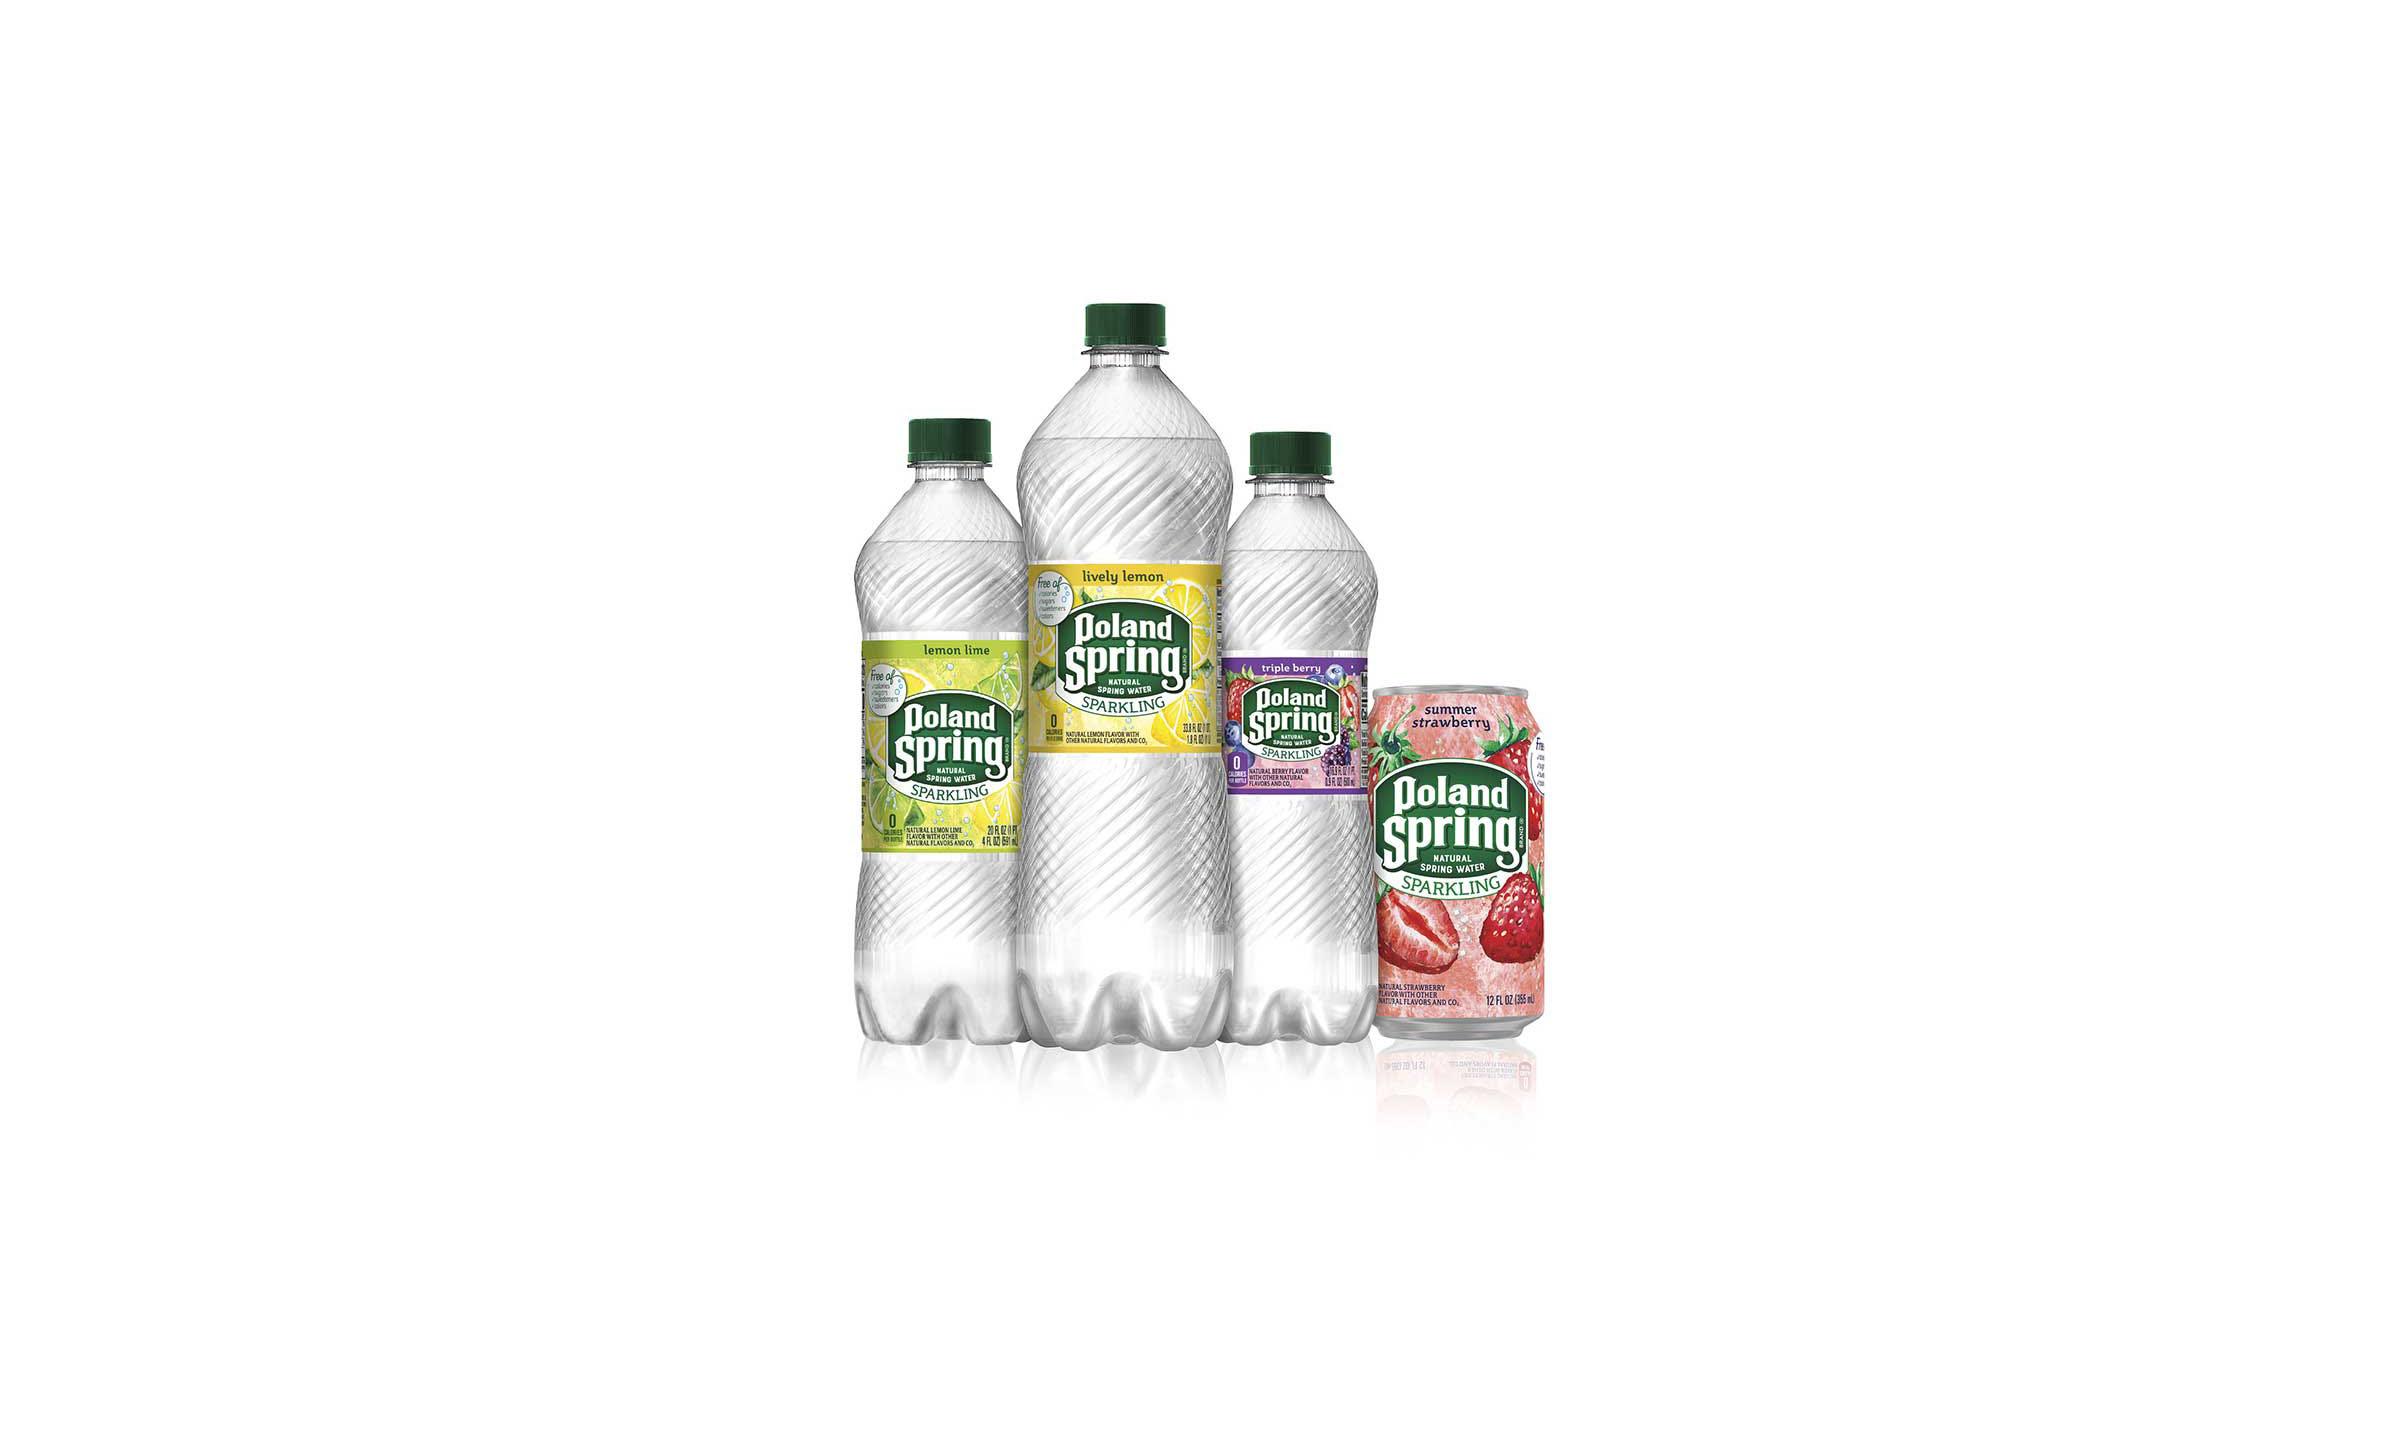 Nestle Waters sparkling products